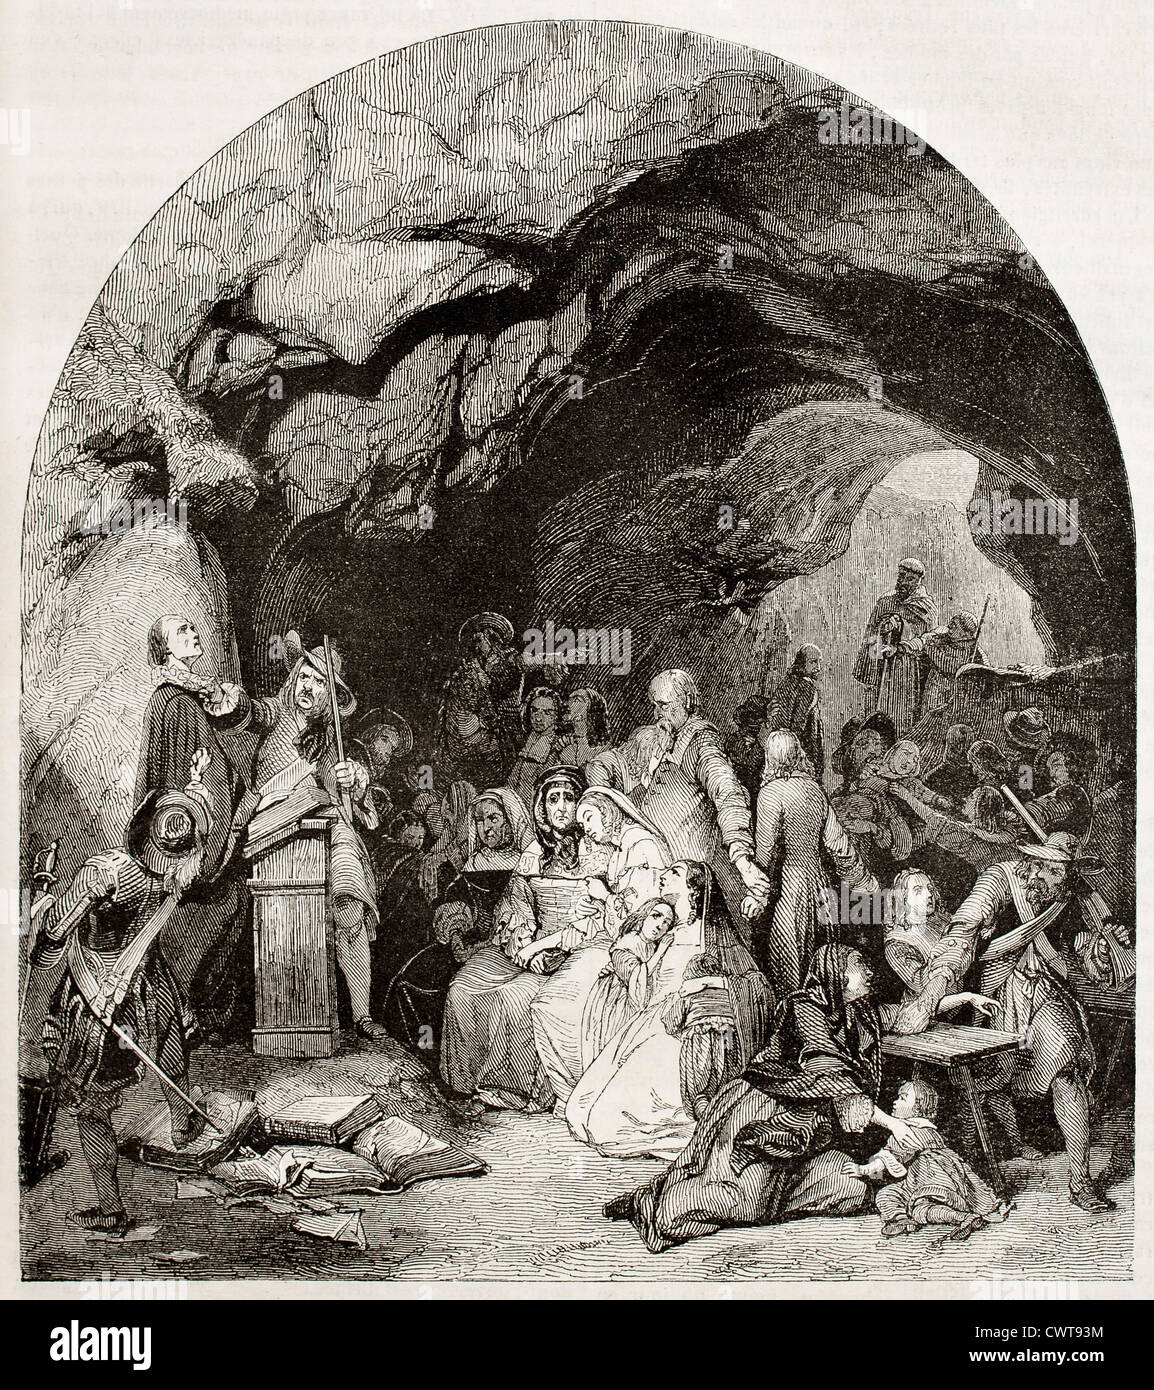 Protestants assembly in a cave - Stock Image